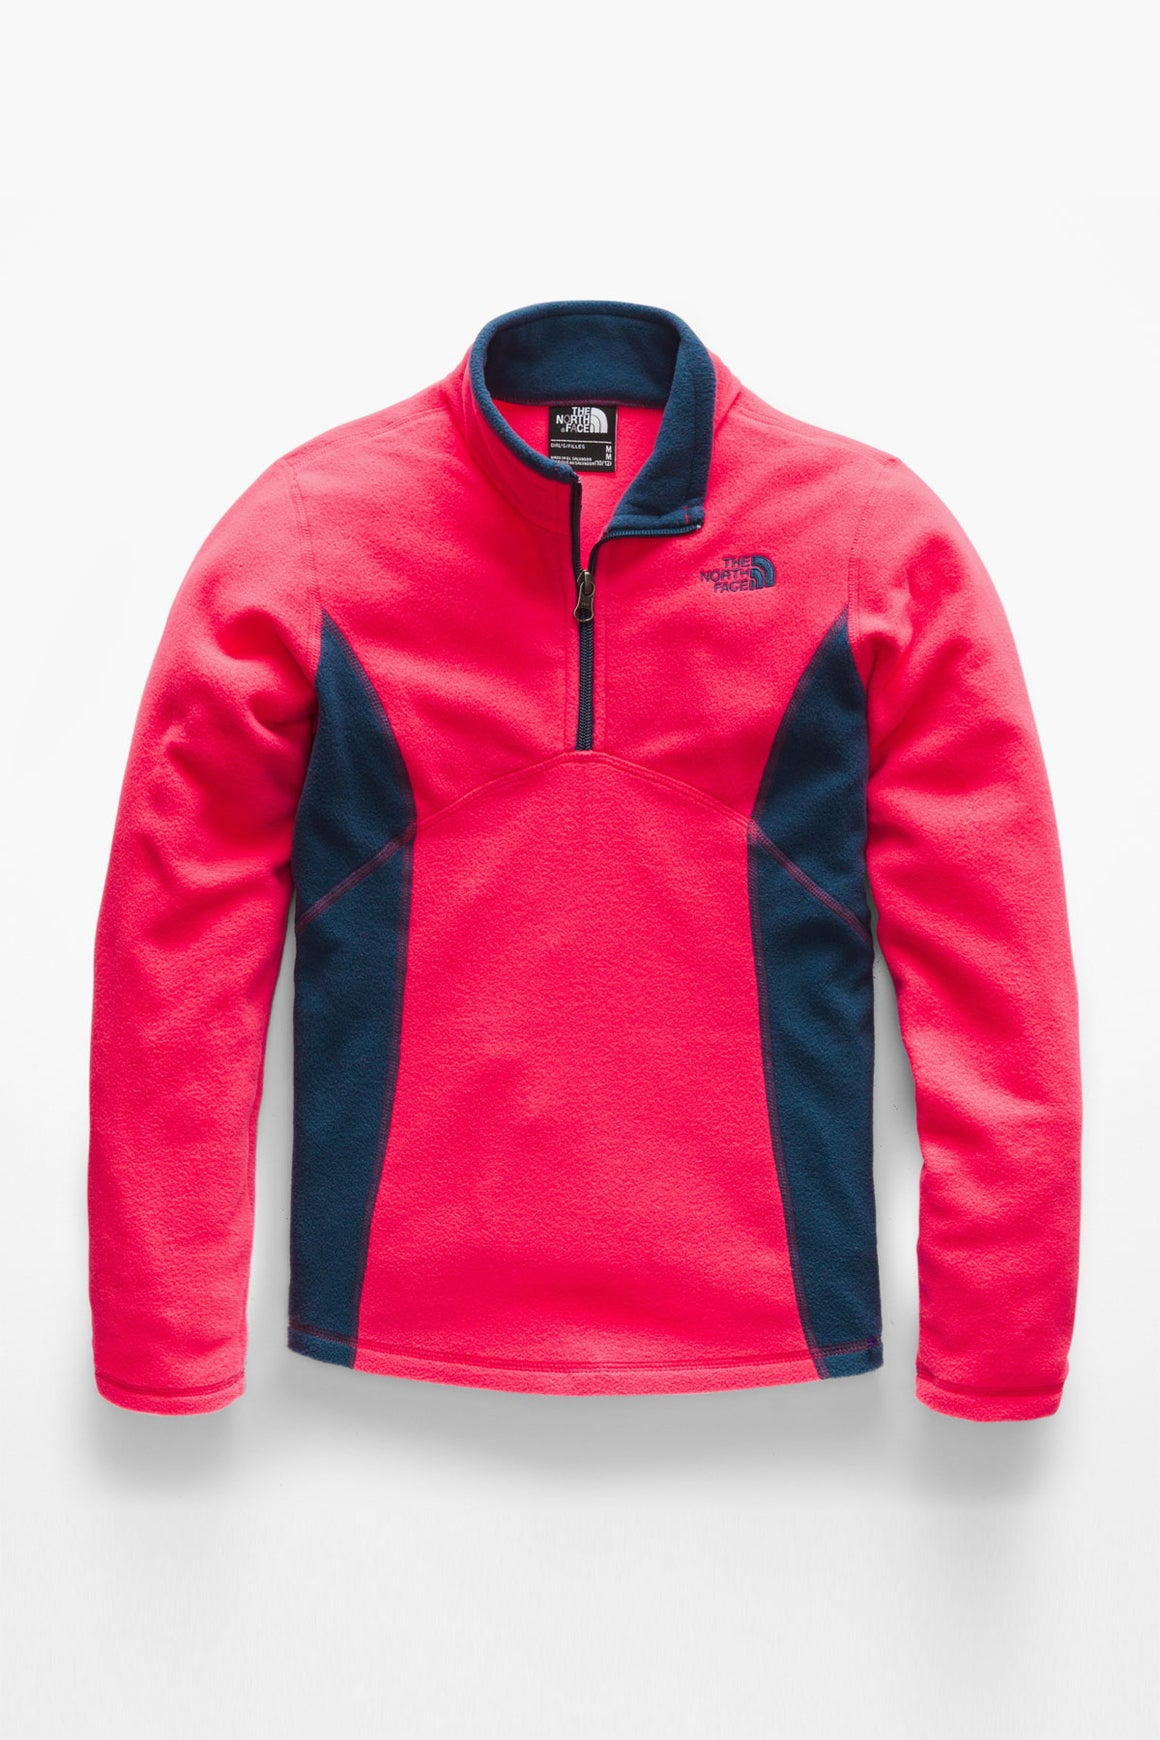 The North Face Girls Glacier 1/4 Zip - Atomic Pink